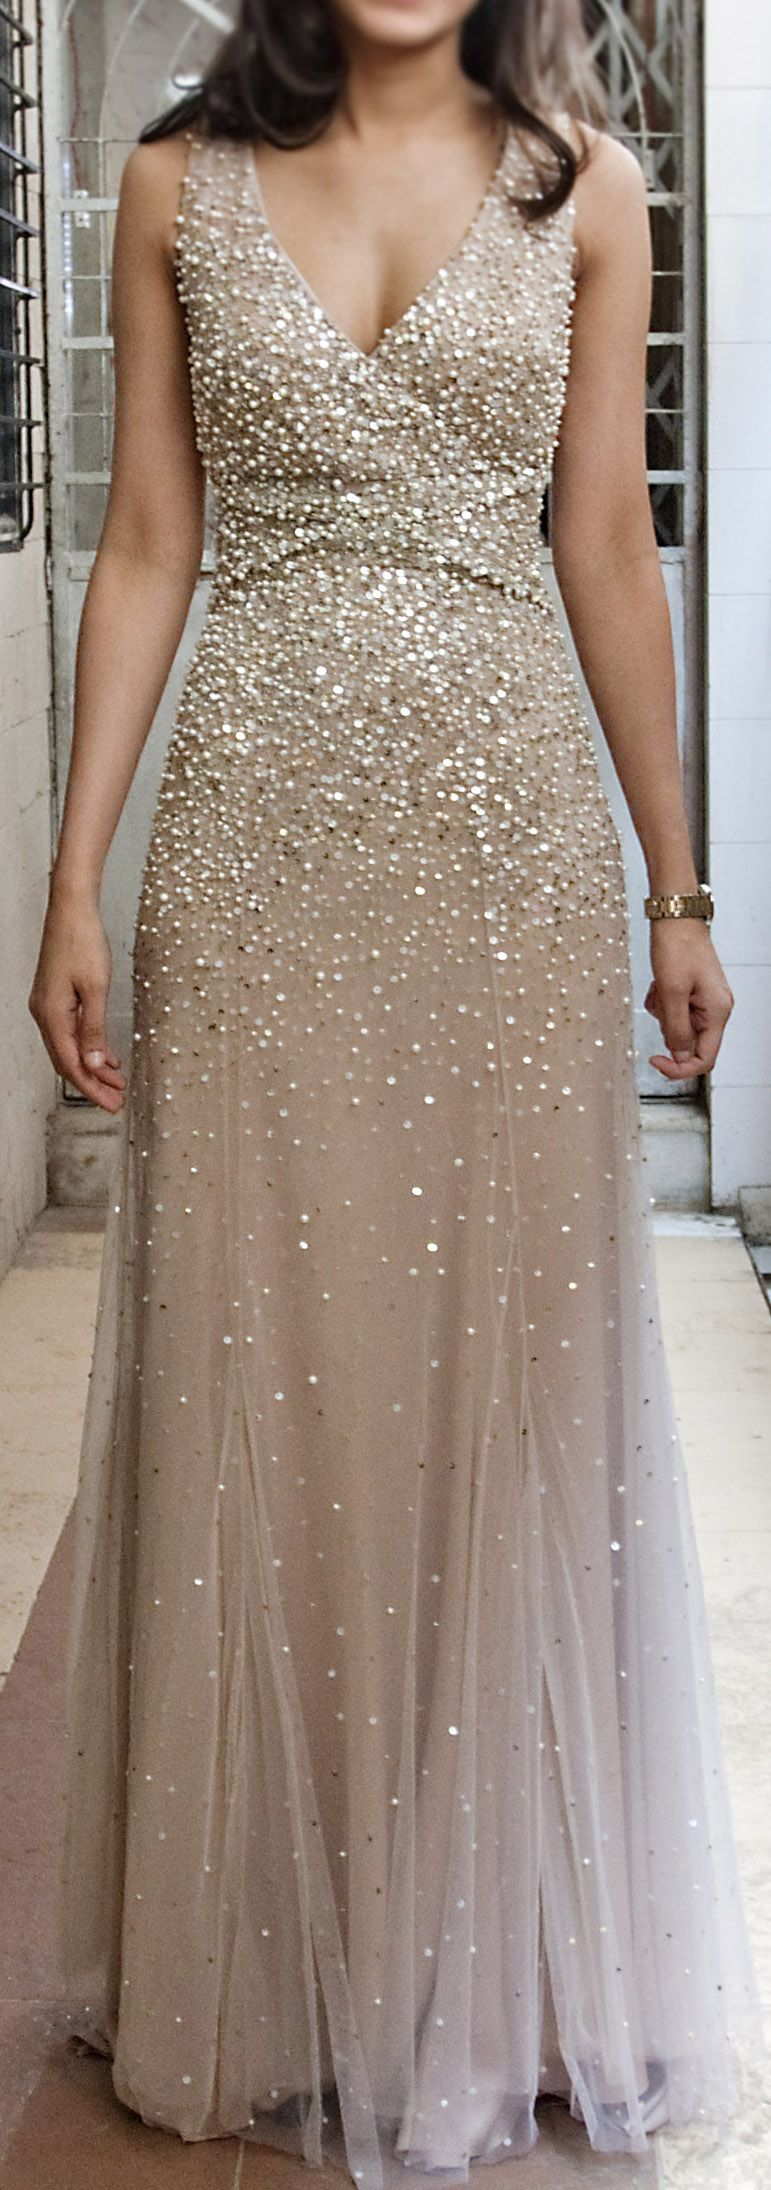 Sparkledust by sharnita nandwana i am obsessed with the for Very sparkly wedding dresses